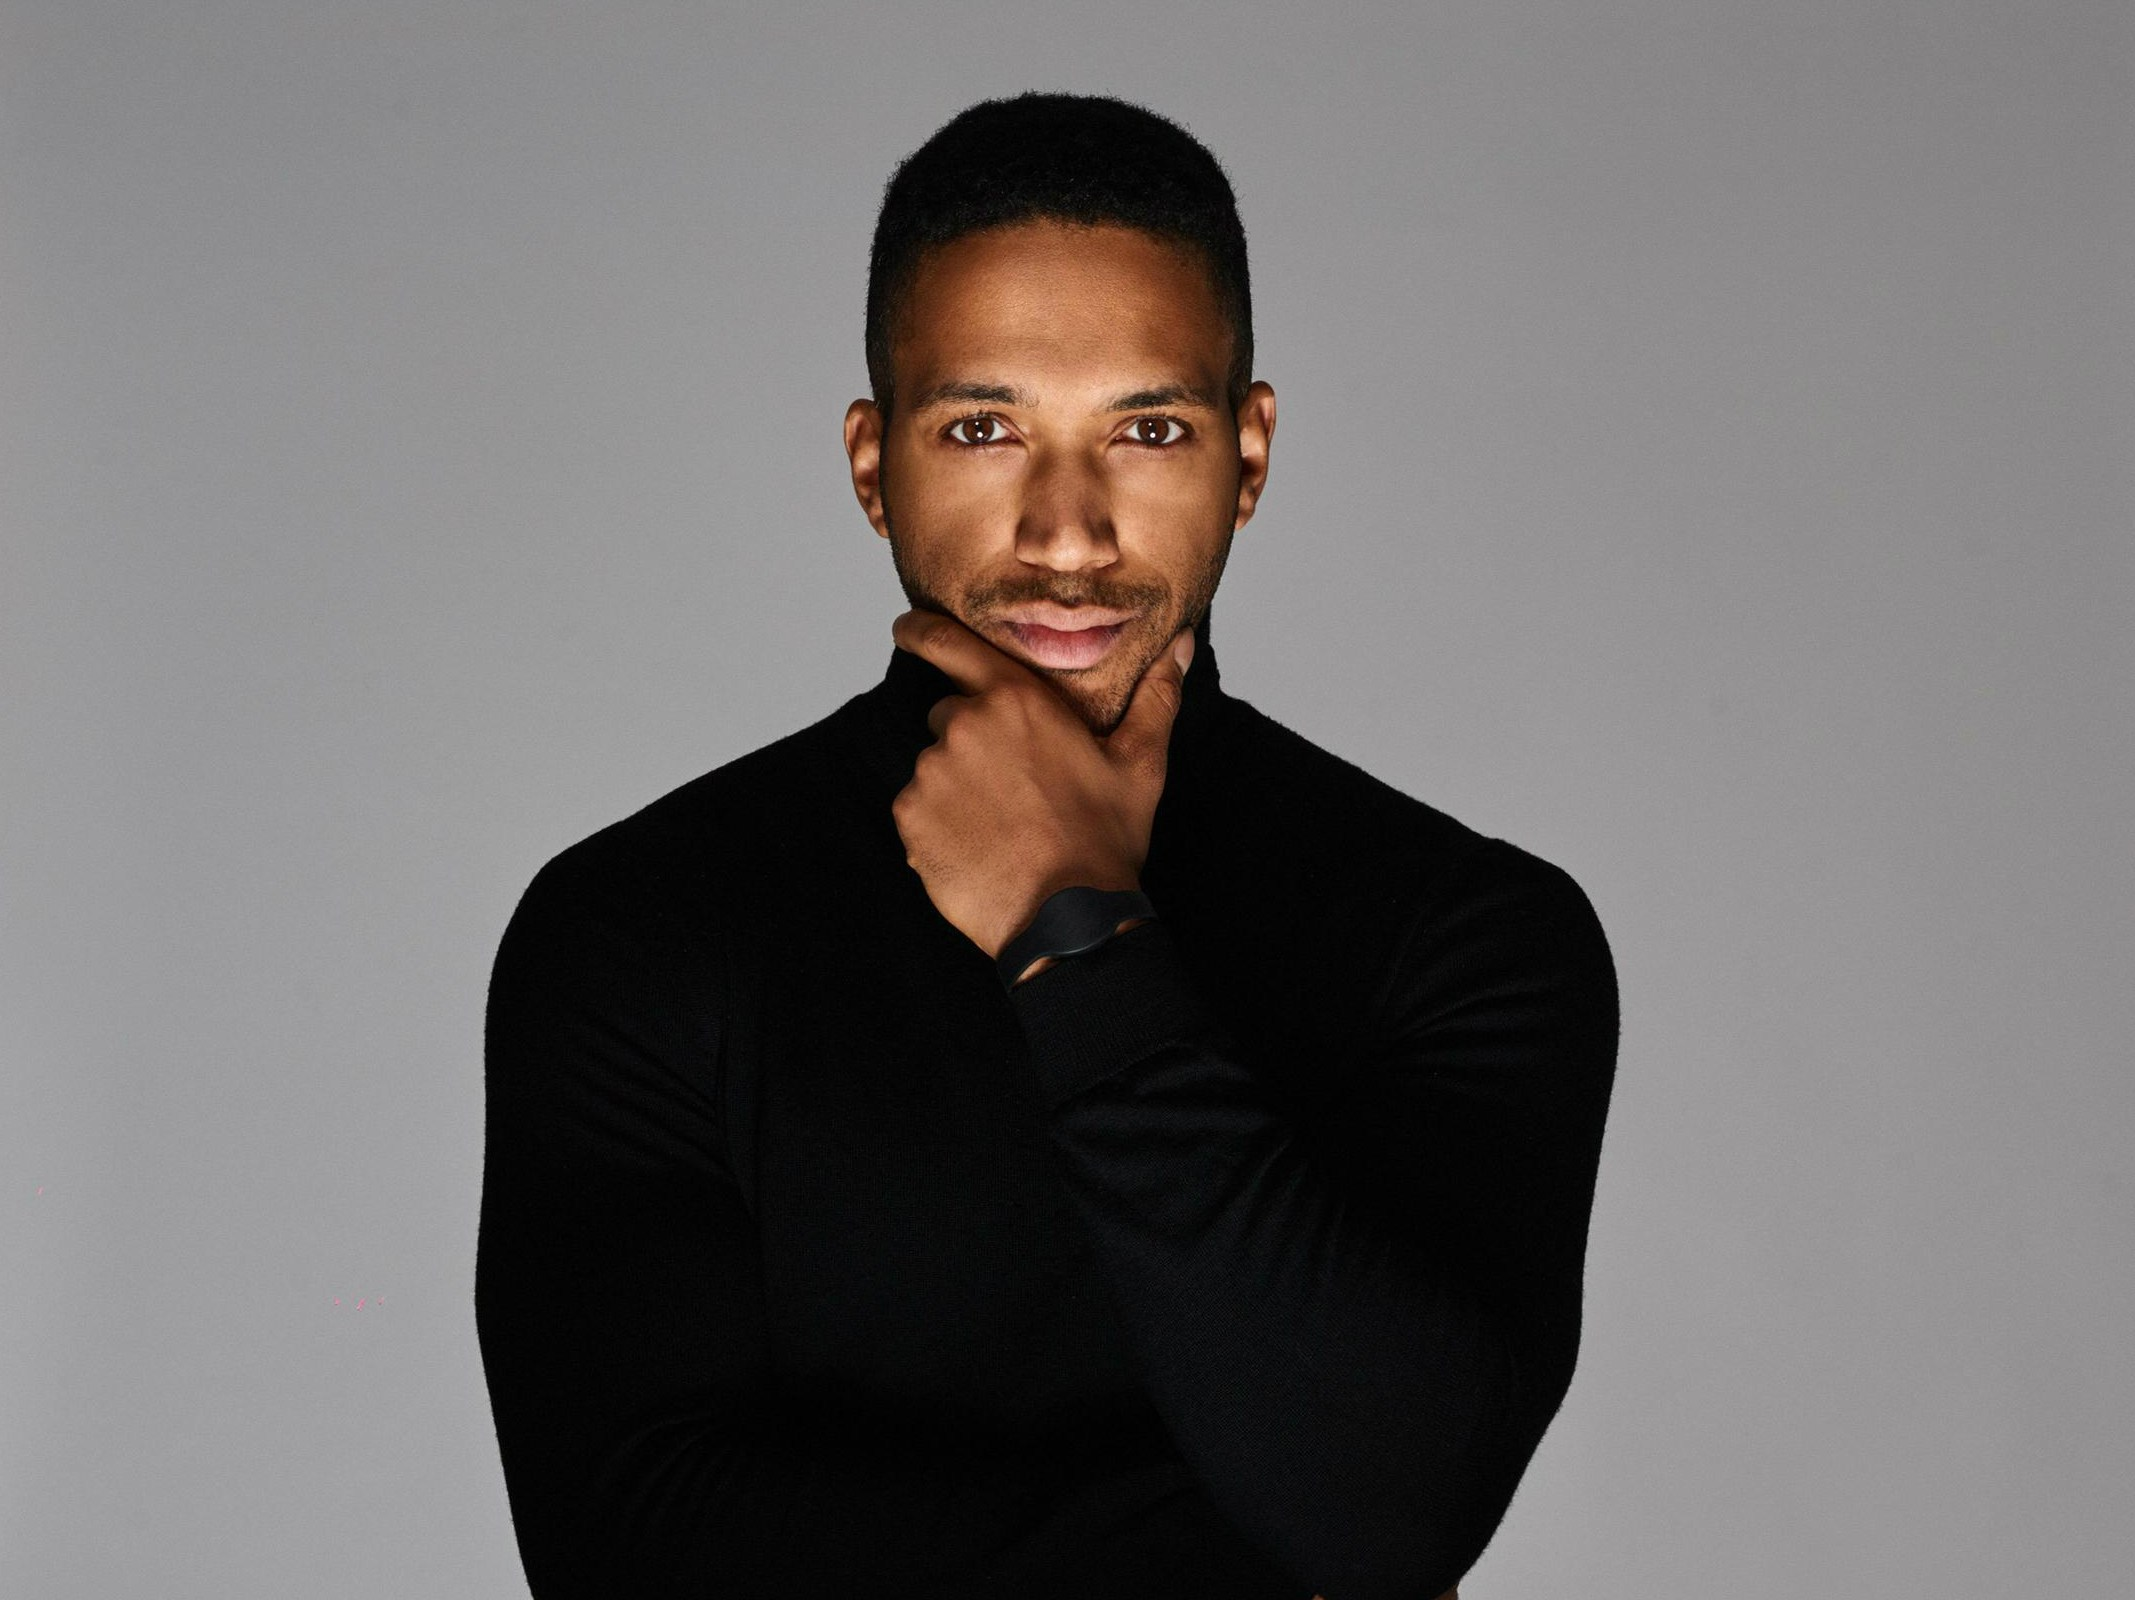 Cesár Sampson, photo via Eurovision.tv